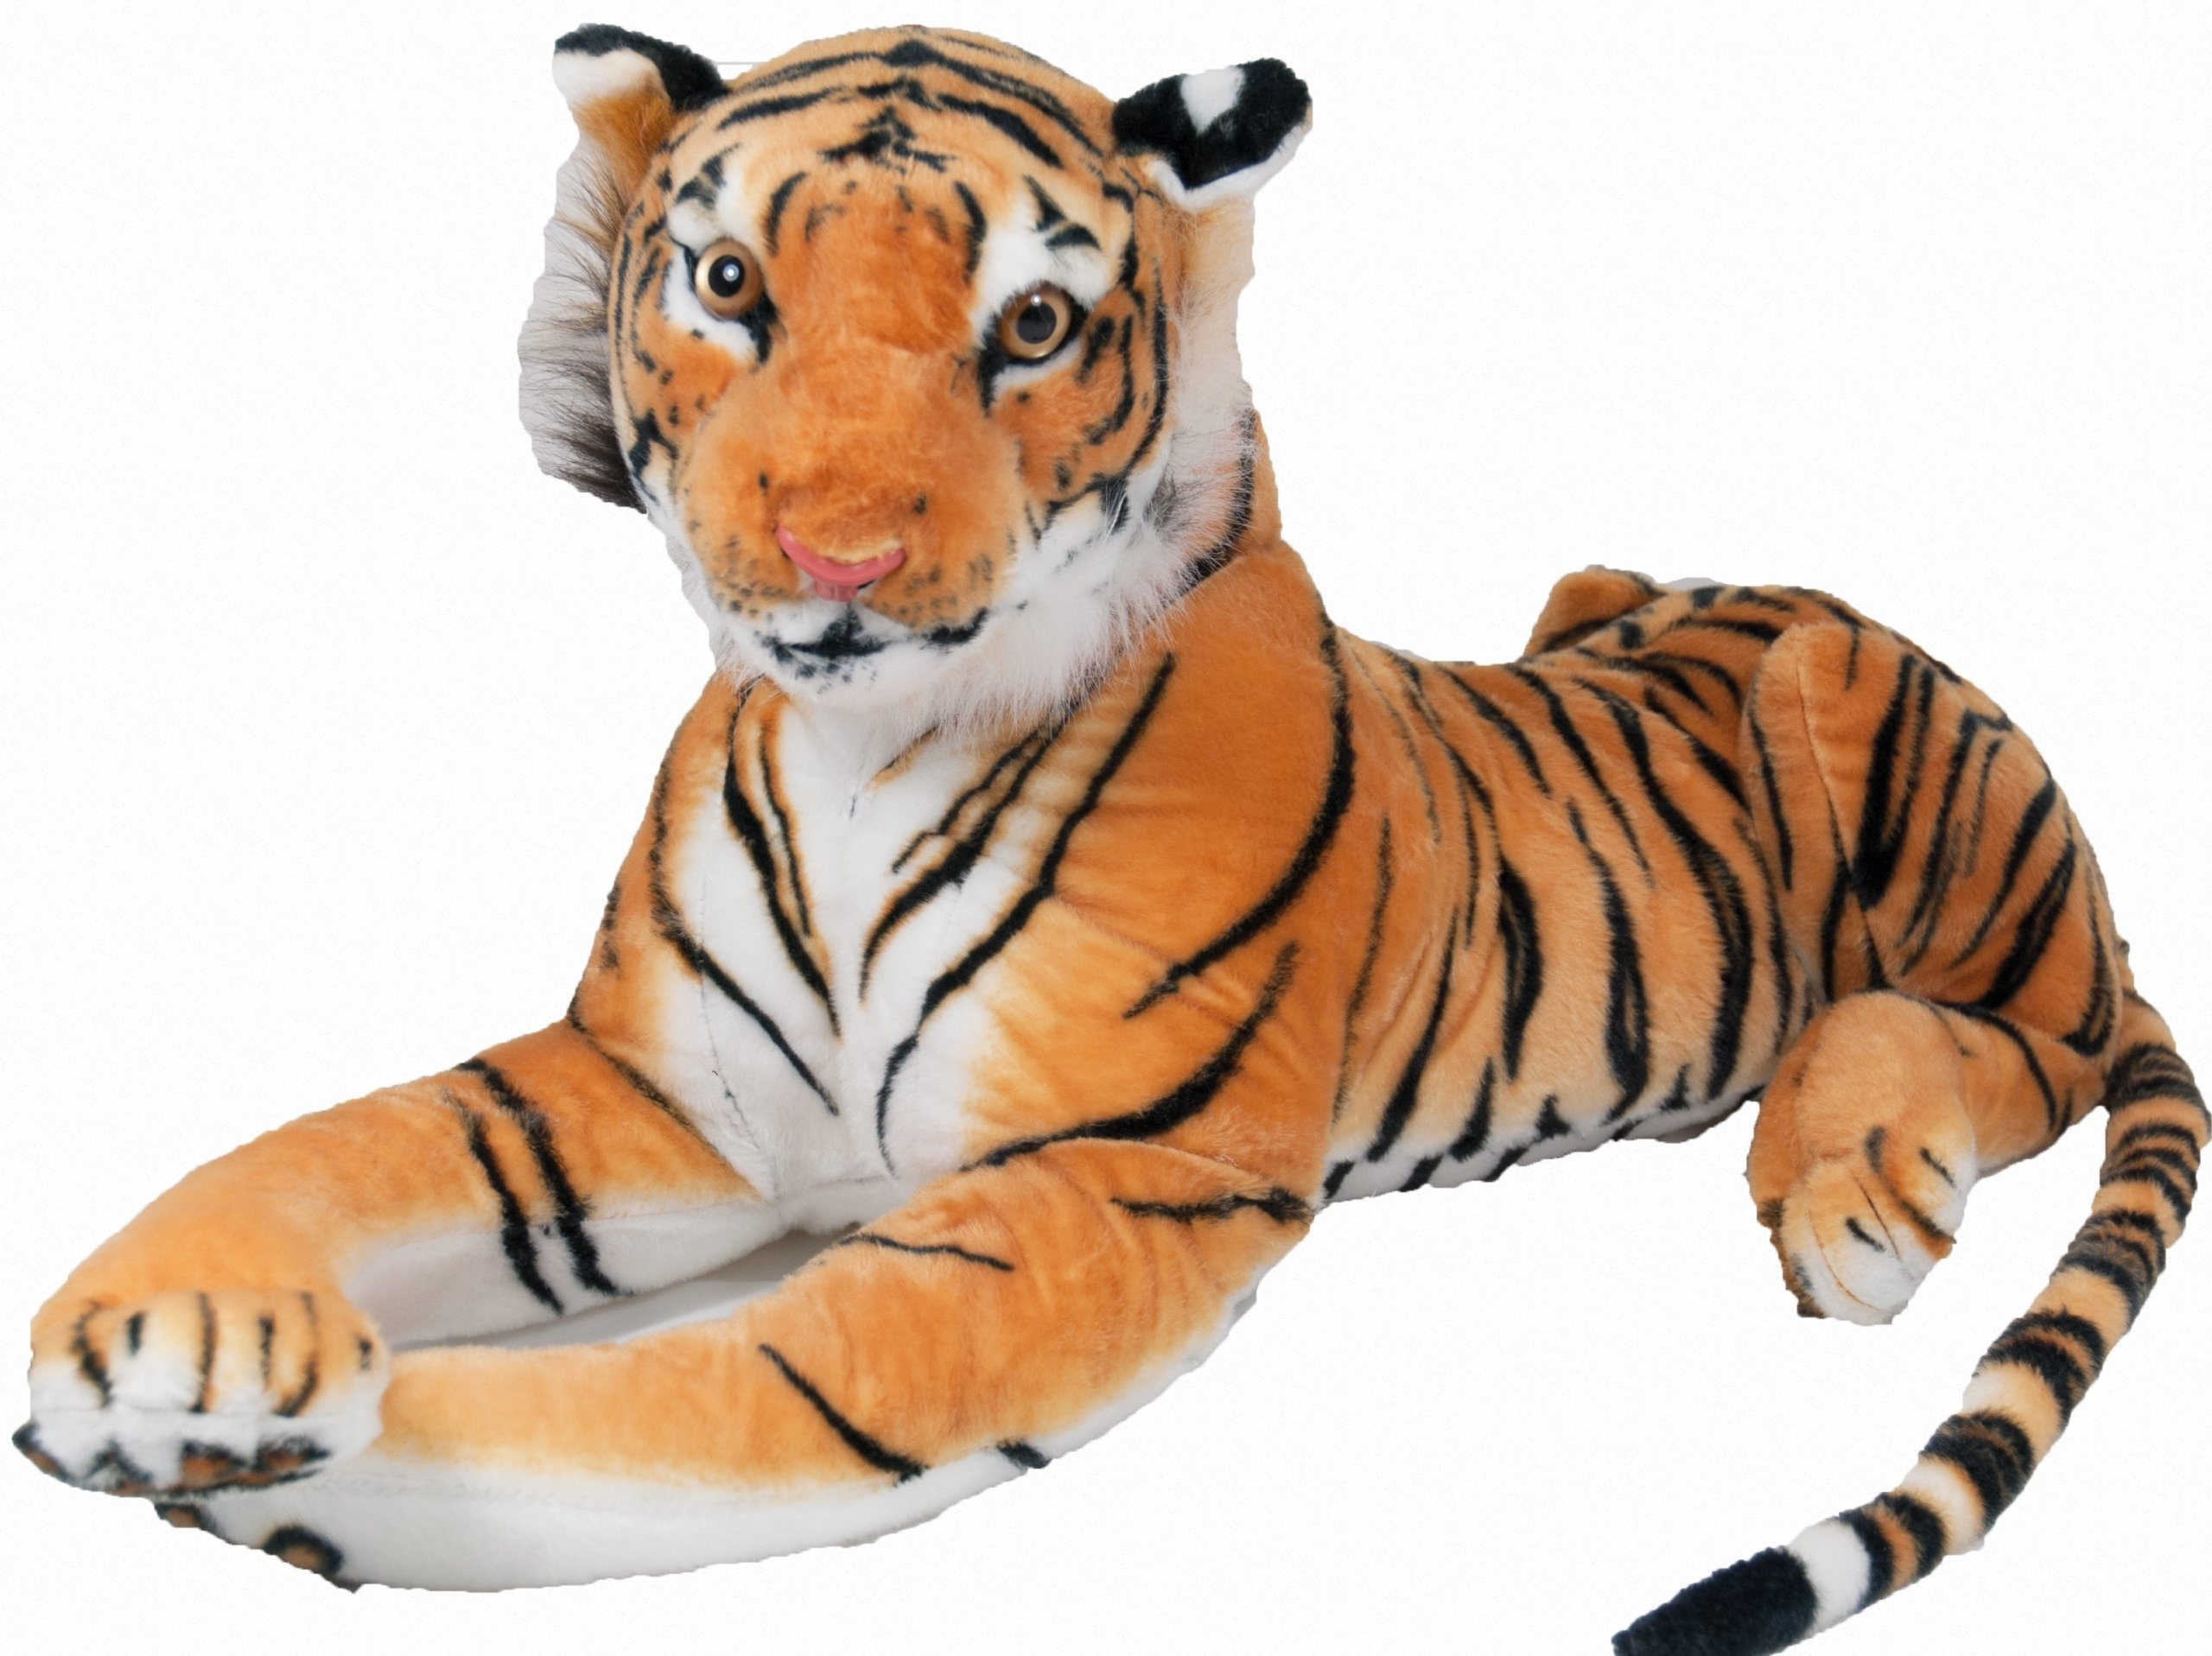 BIG TIGER CAT PLUSH TOY BROWN WHITE 110 + 60 cm 2 WZ